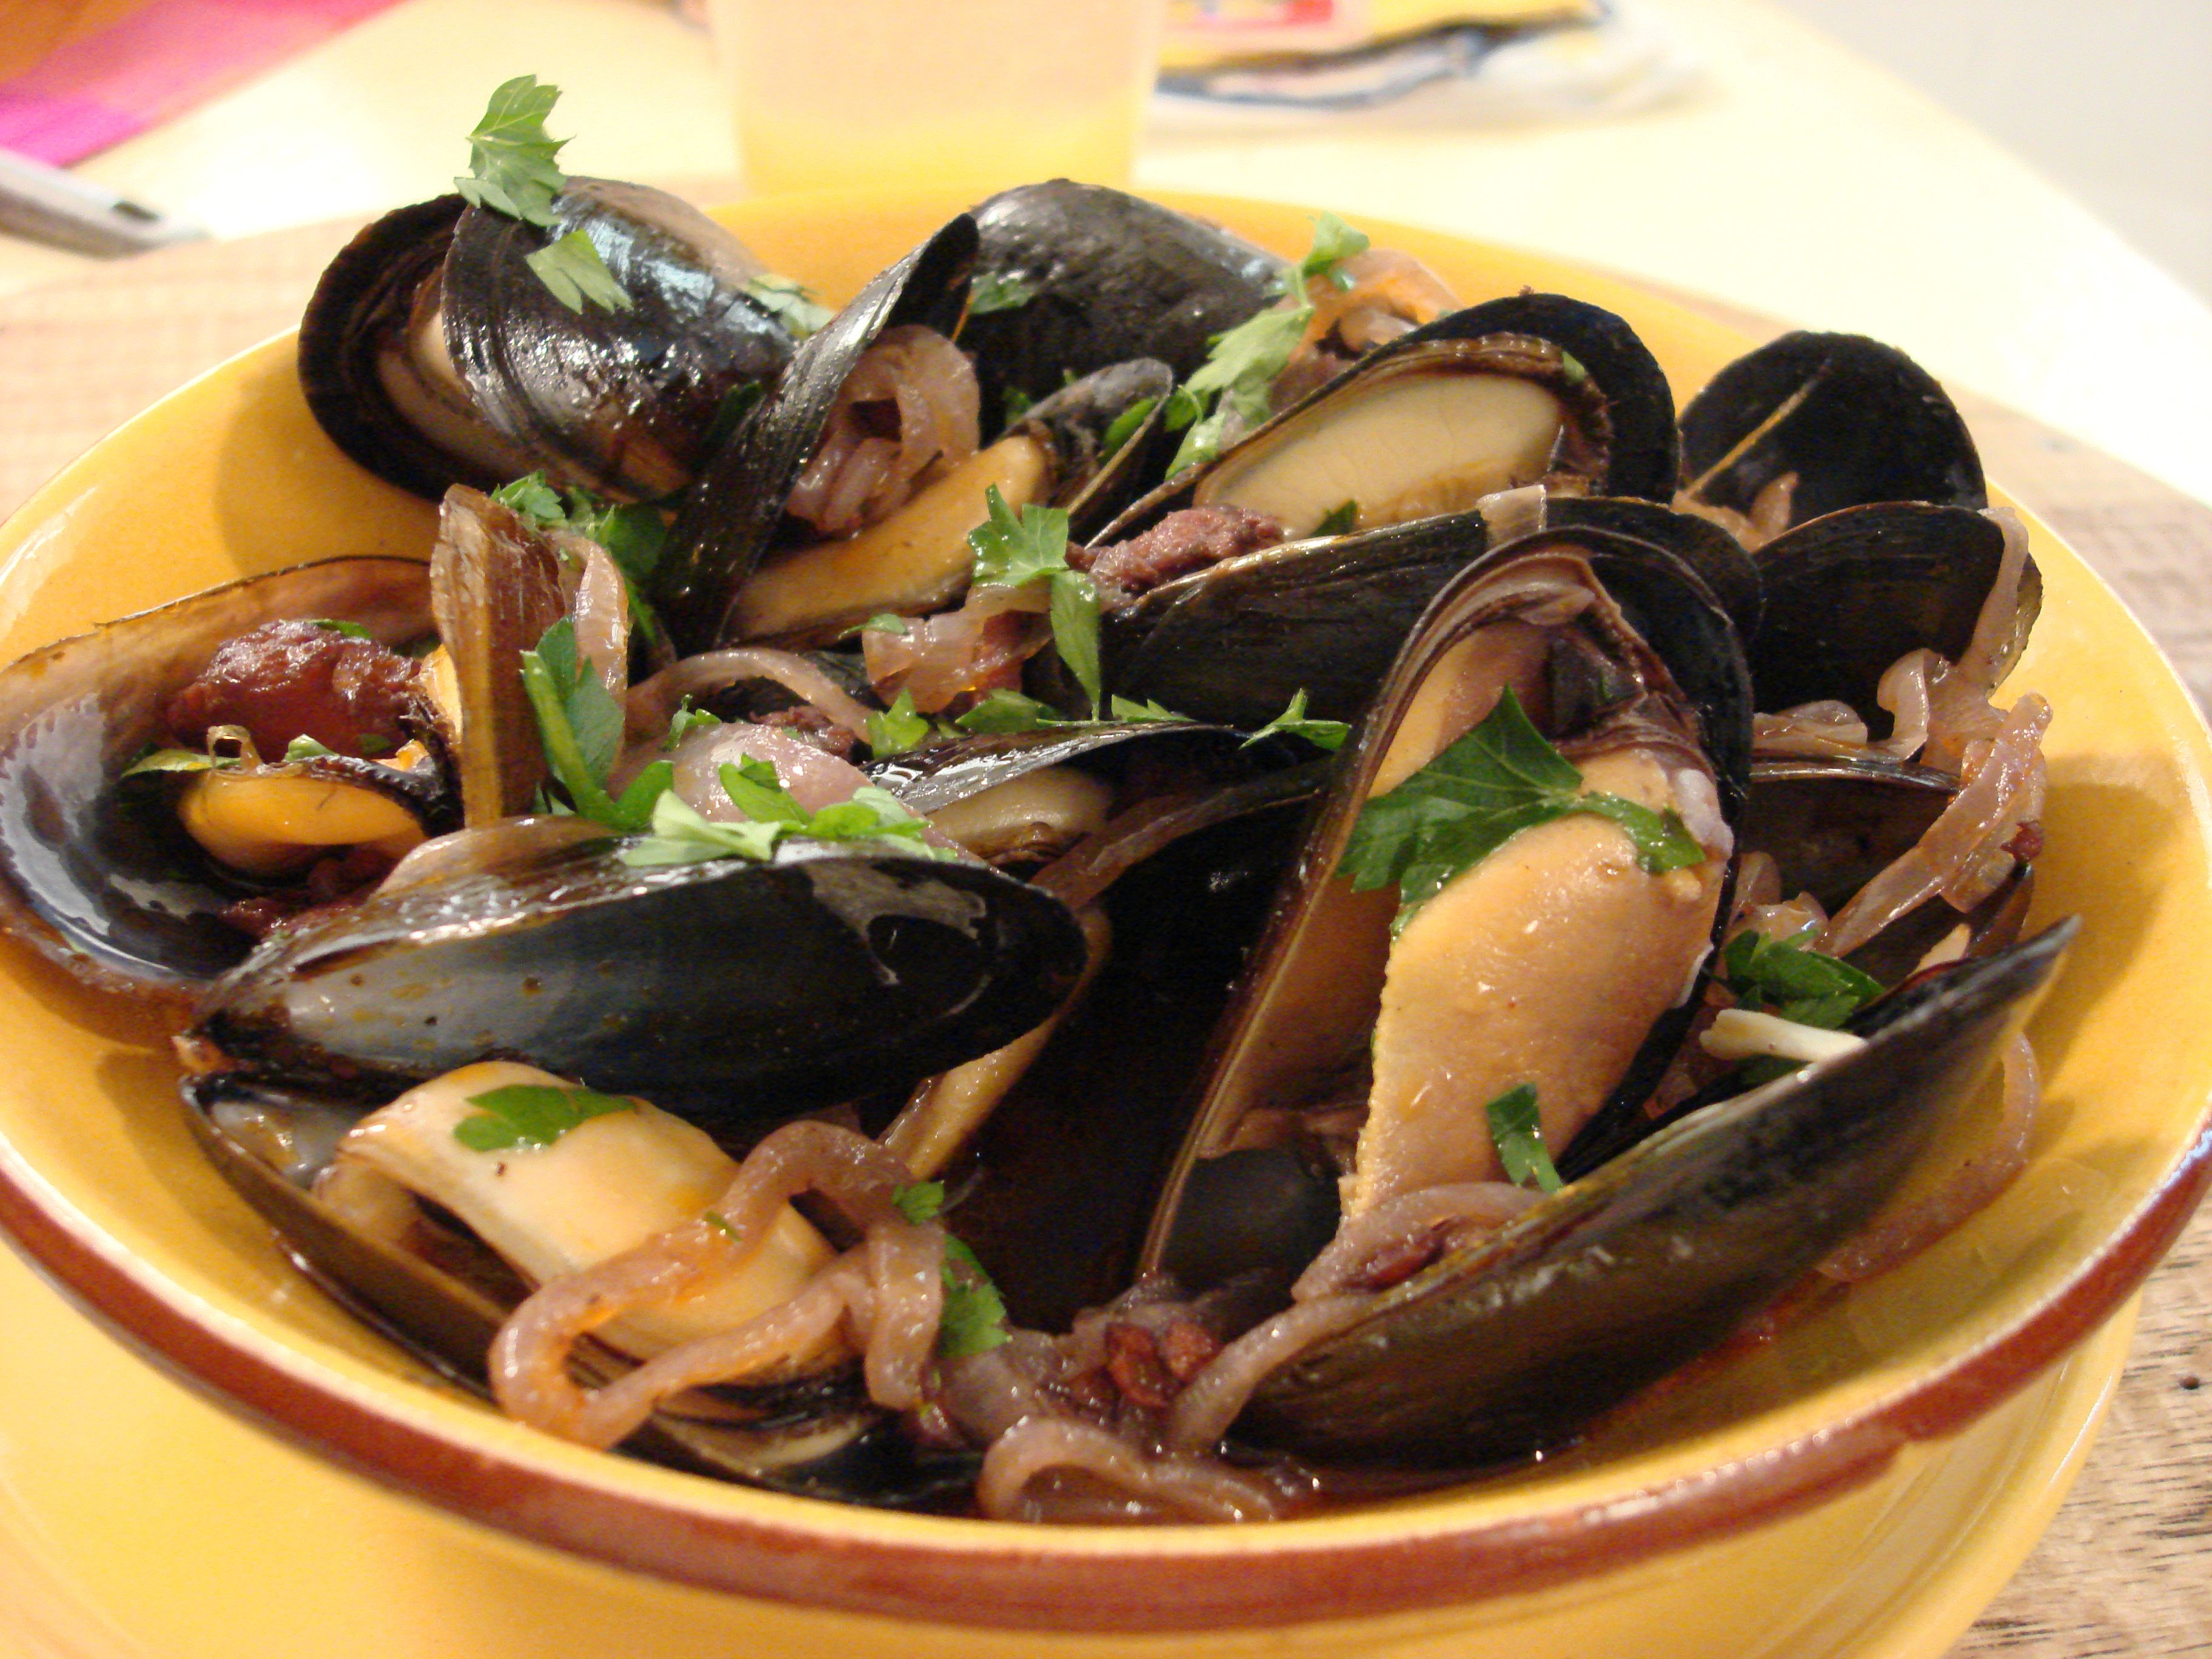 Spanish Tapas-Inspired Mussels Spanish Tapas-Inspired Mussels new foto